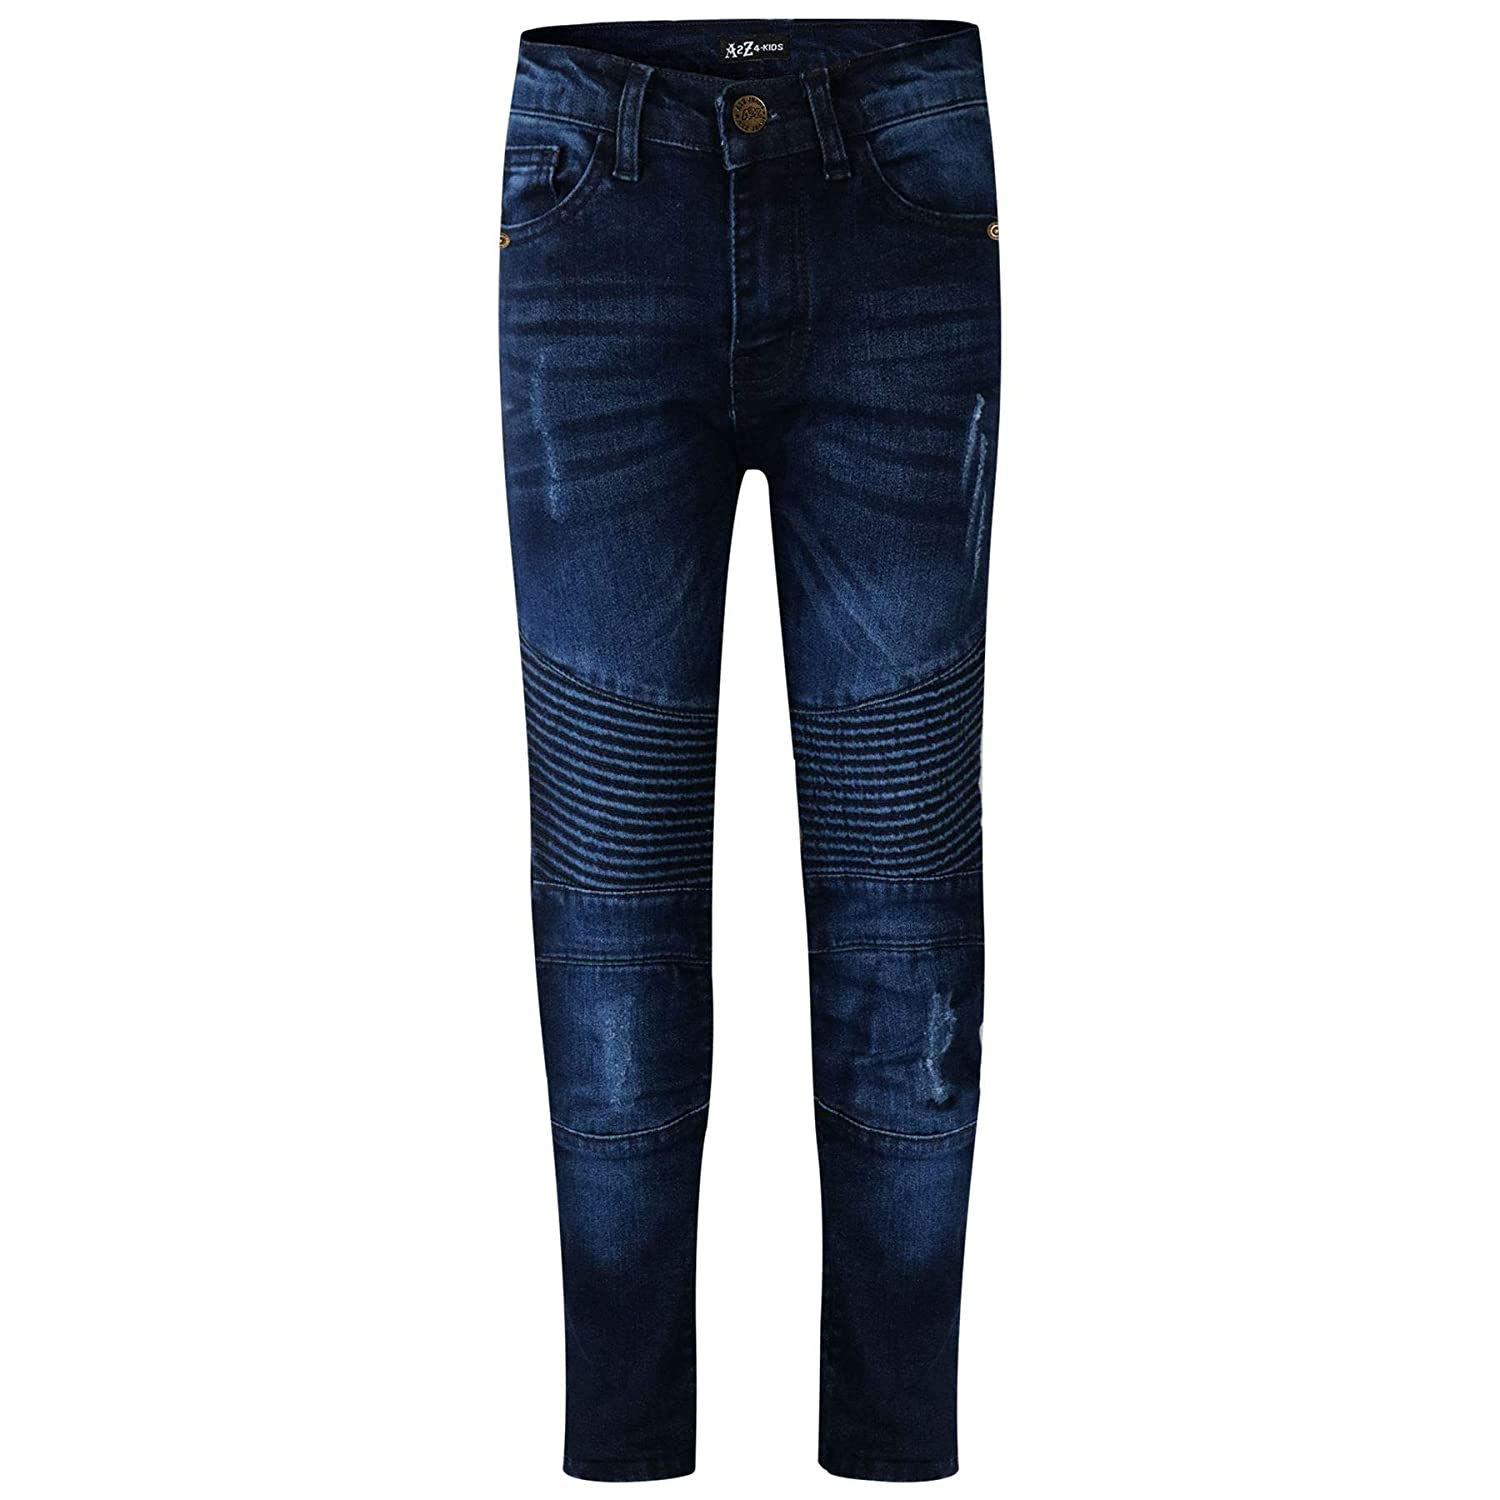 A2Z 4 Kids® Kids Boys Stretchy Jeans Designer's Dark Blue Ripped Knee Drape Panel Denim Pants Fashion Slim Fit Trousers New Age 5 6 7 8 9 10 11 12 13 Years